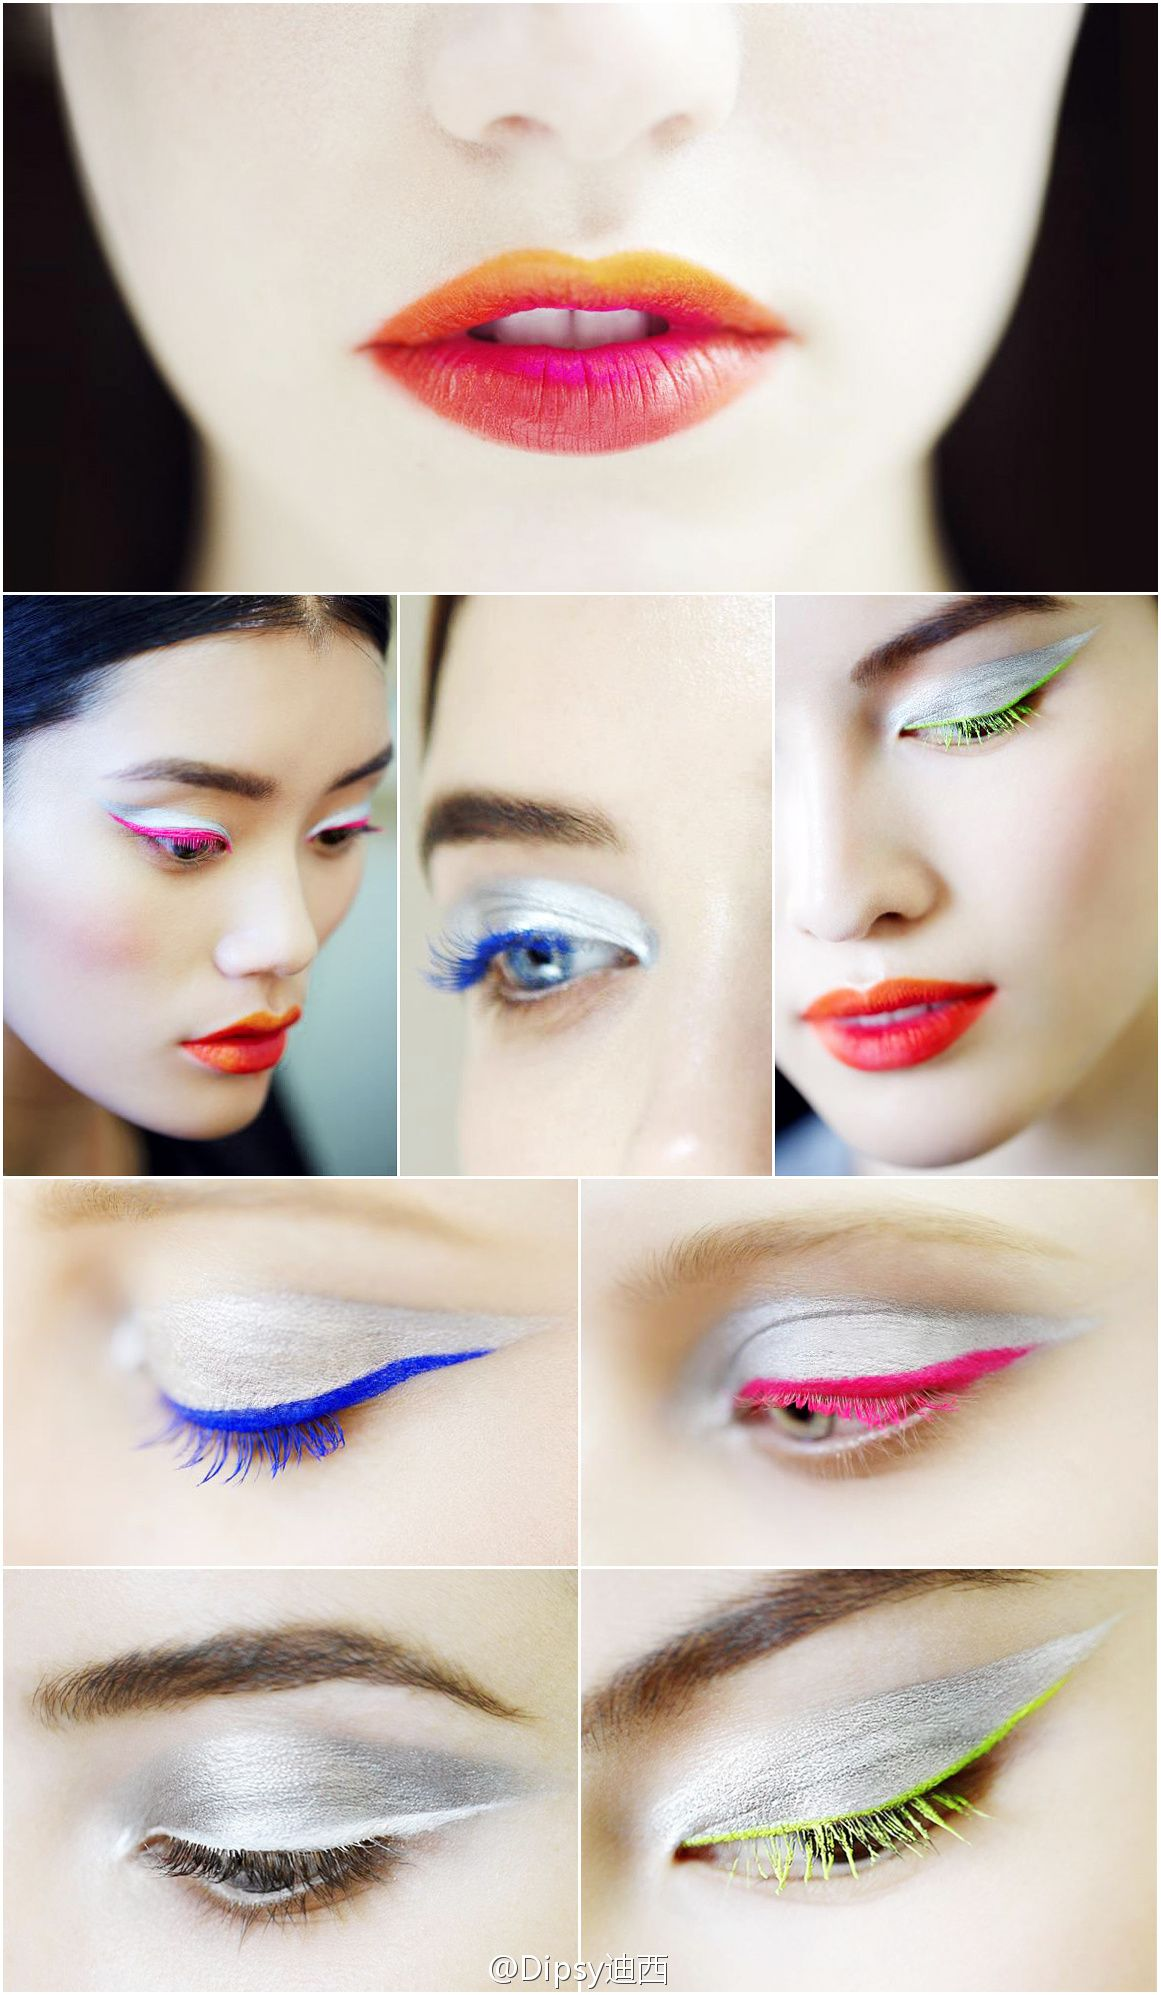 Romwe repin. :) I've never liked green mascara, but blue and hot pink are very pretty! I love the multicolor lips as well. :D